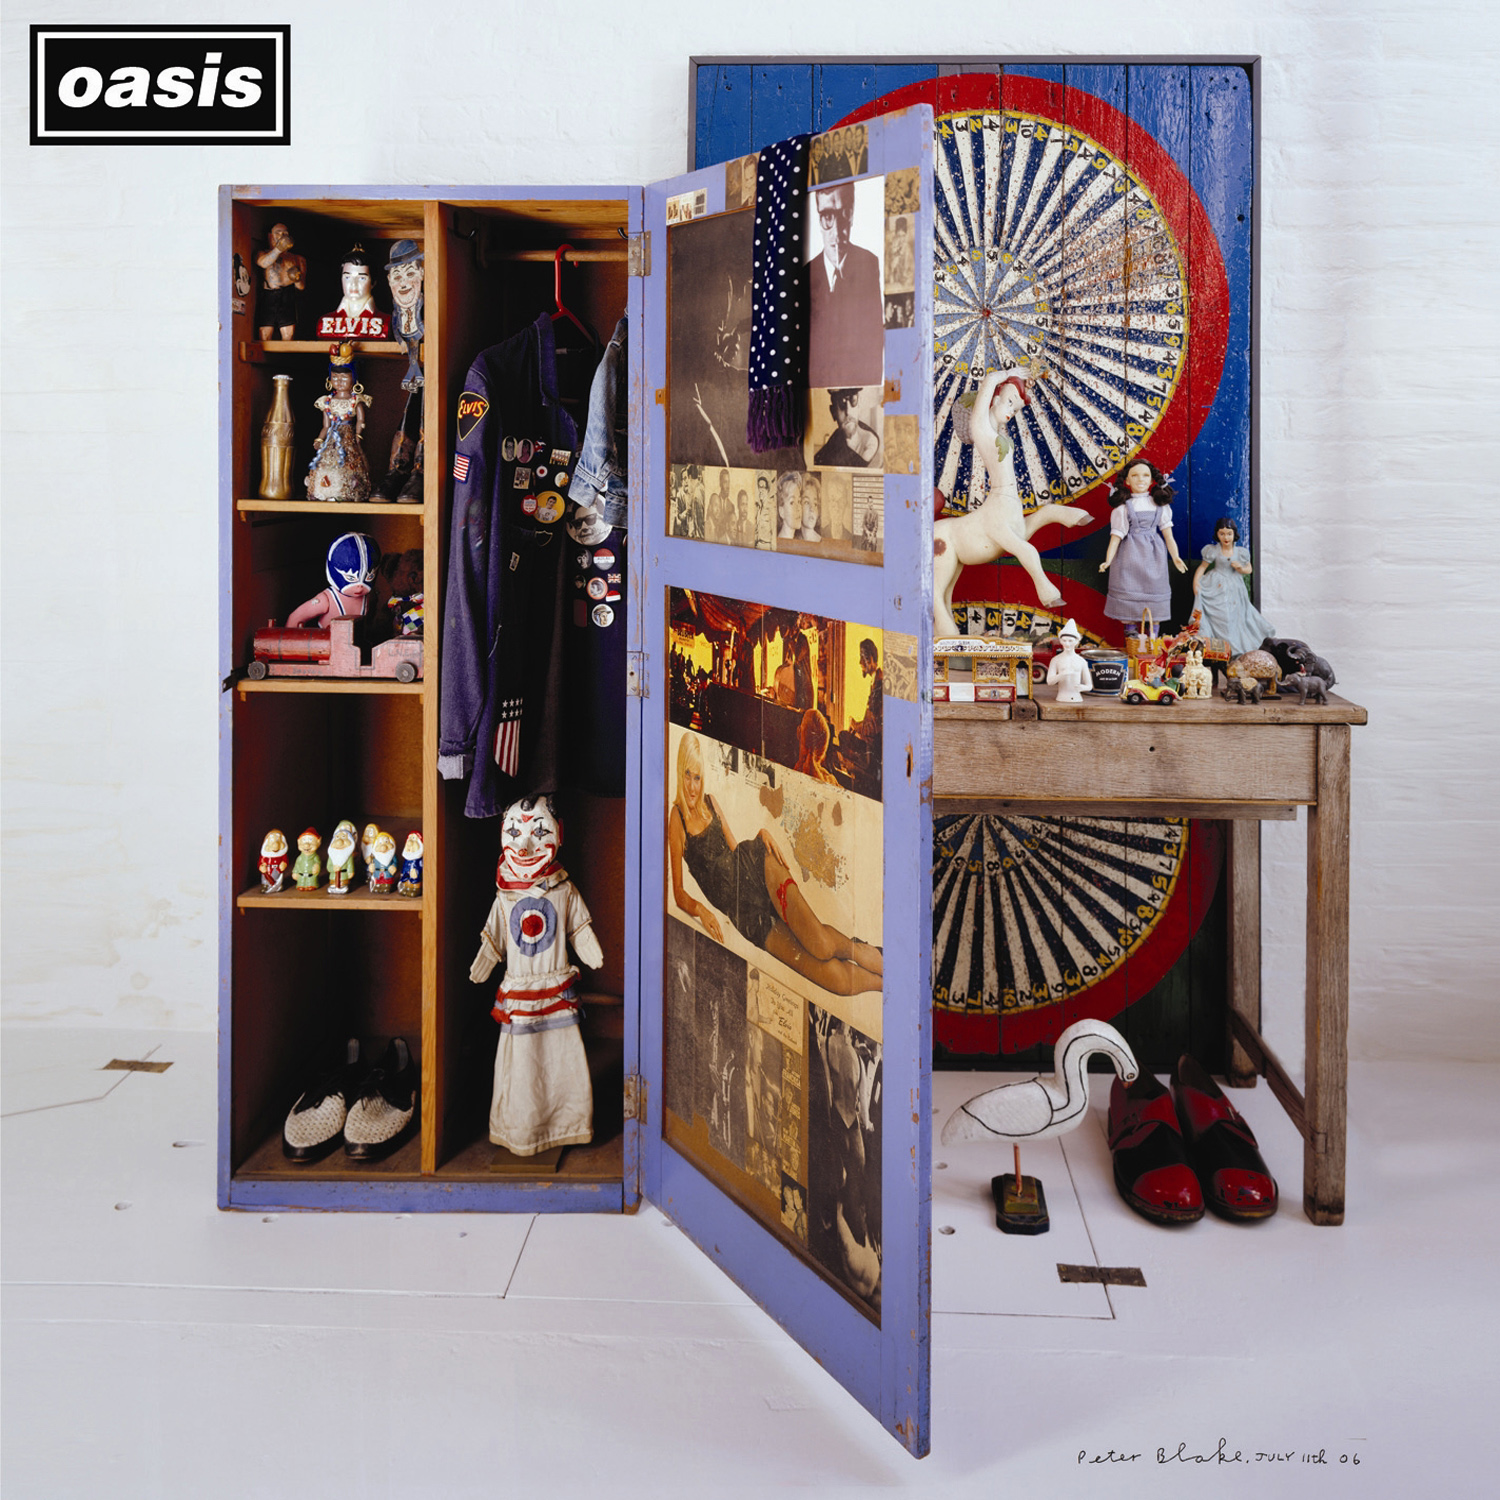 Oasis, Stop The Clocks